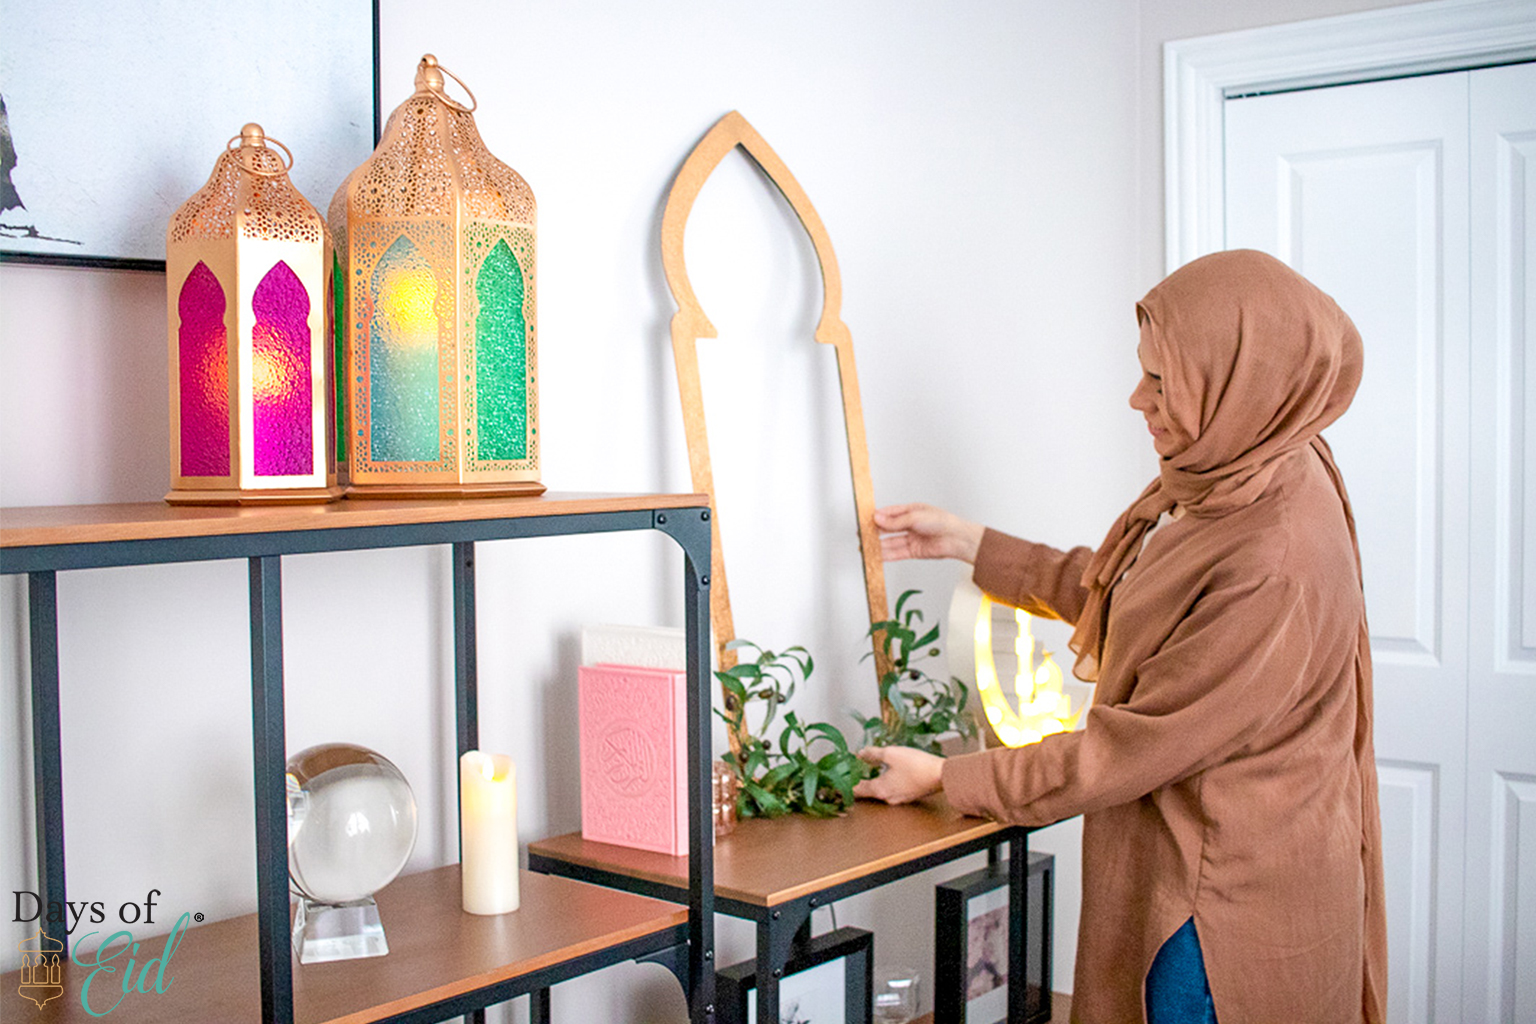 Founder Reem sets up lanterns and door decor inside her home